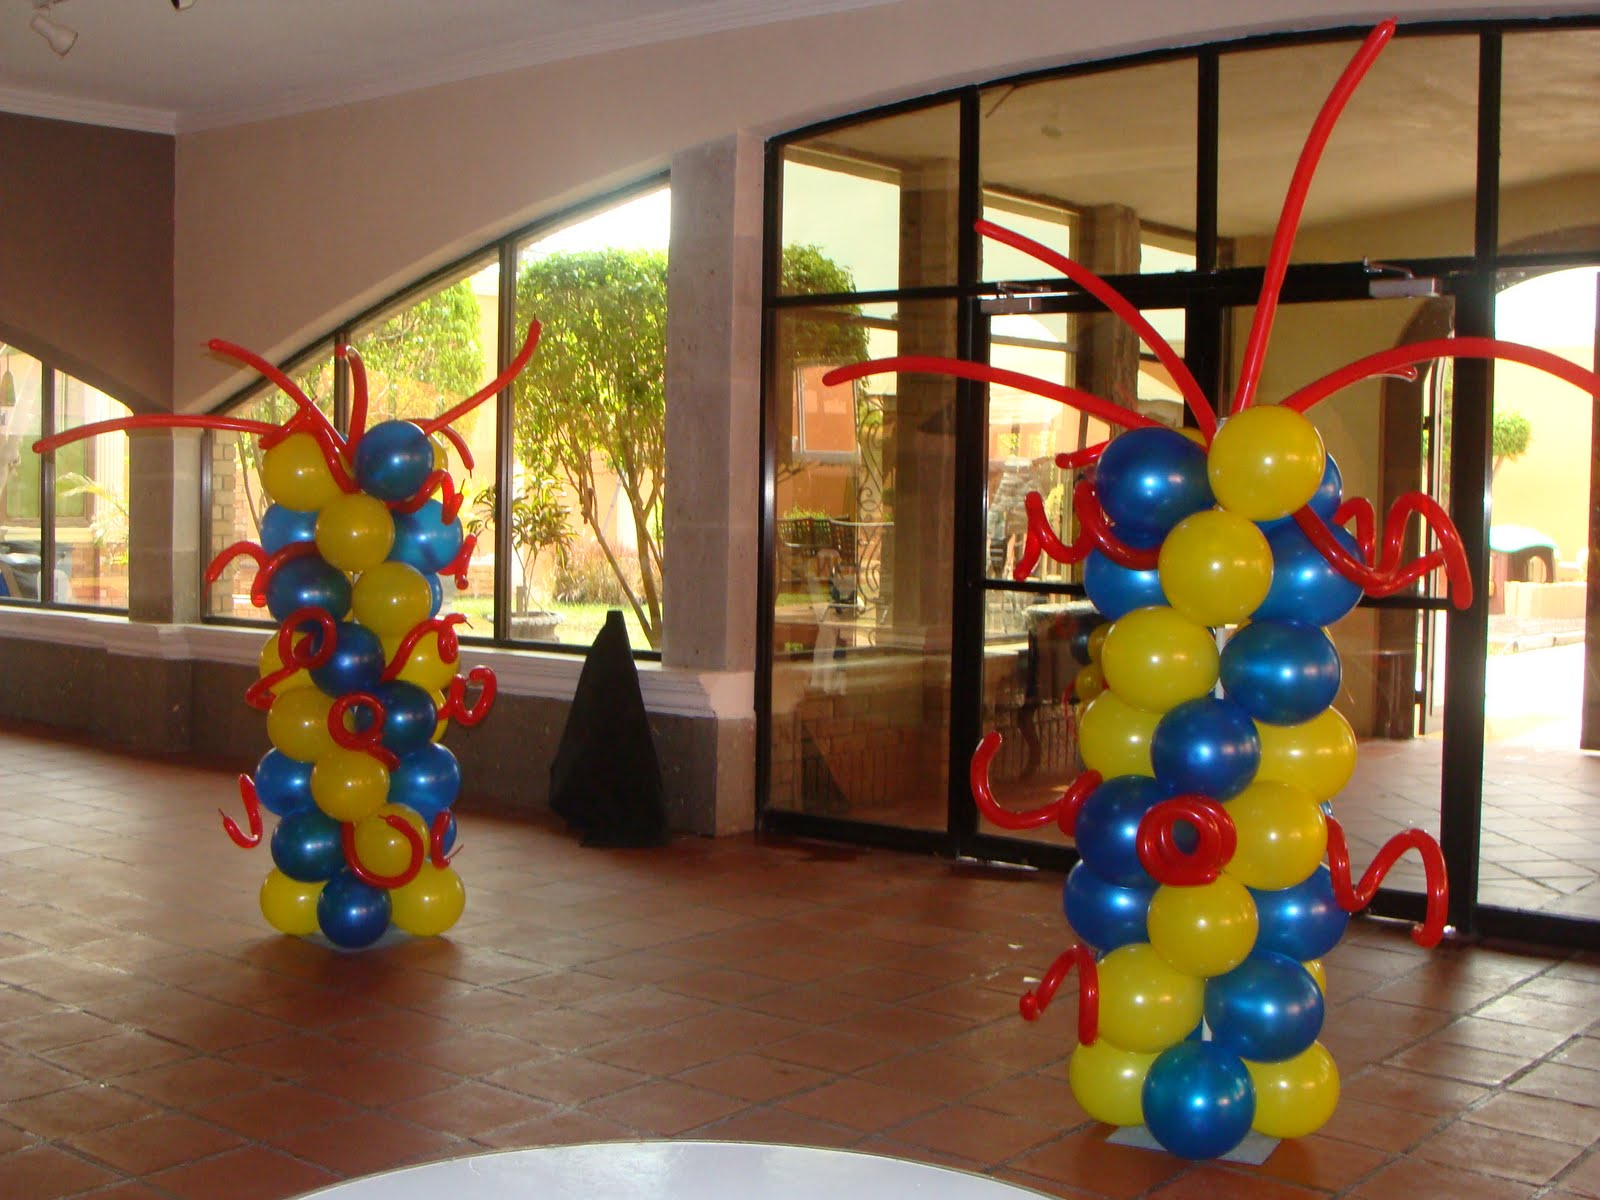 Decoraciones De Globos De Cars 1600 x 1200